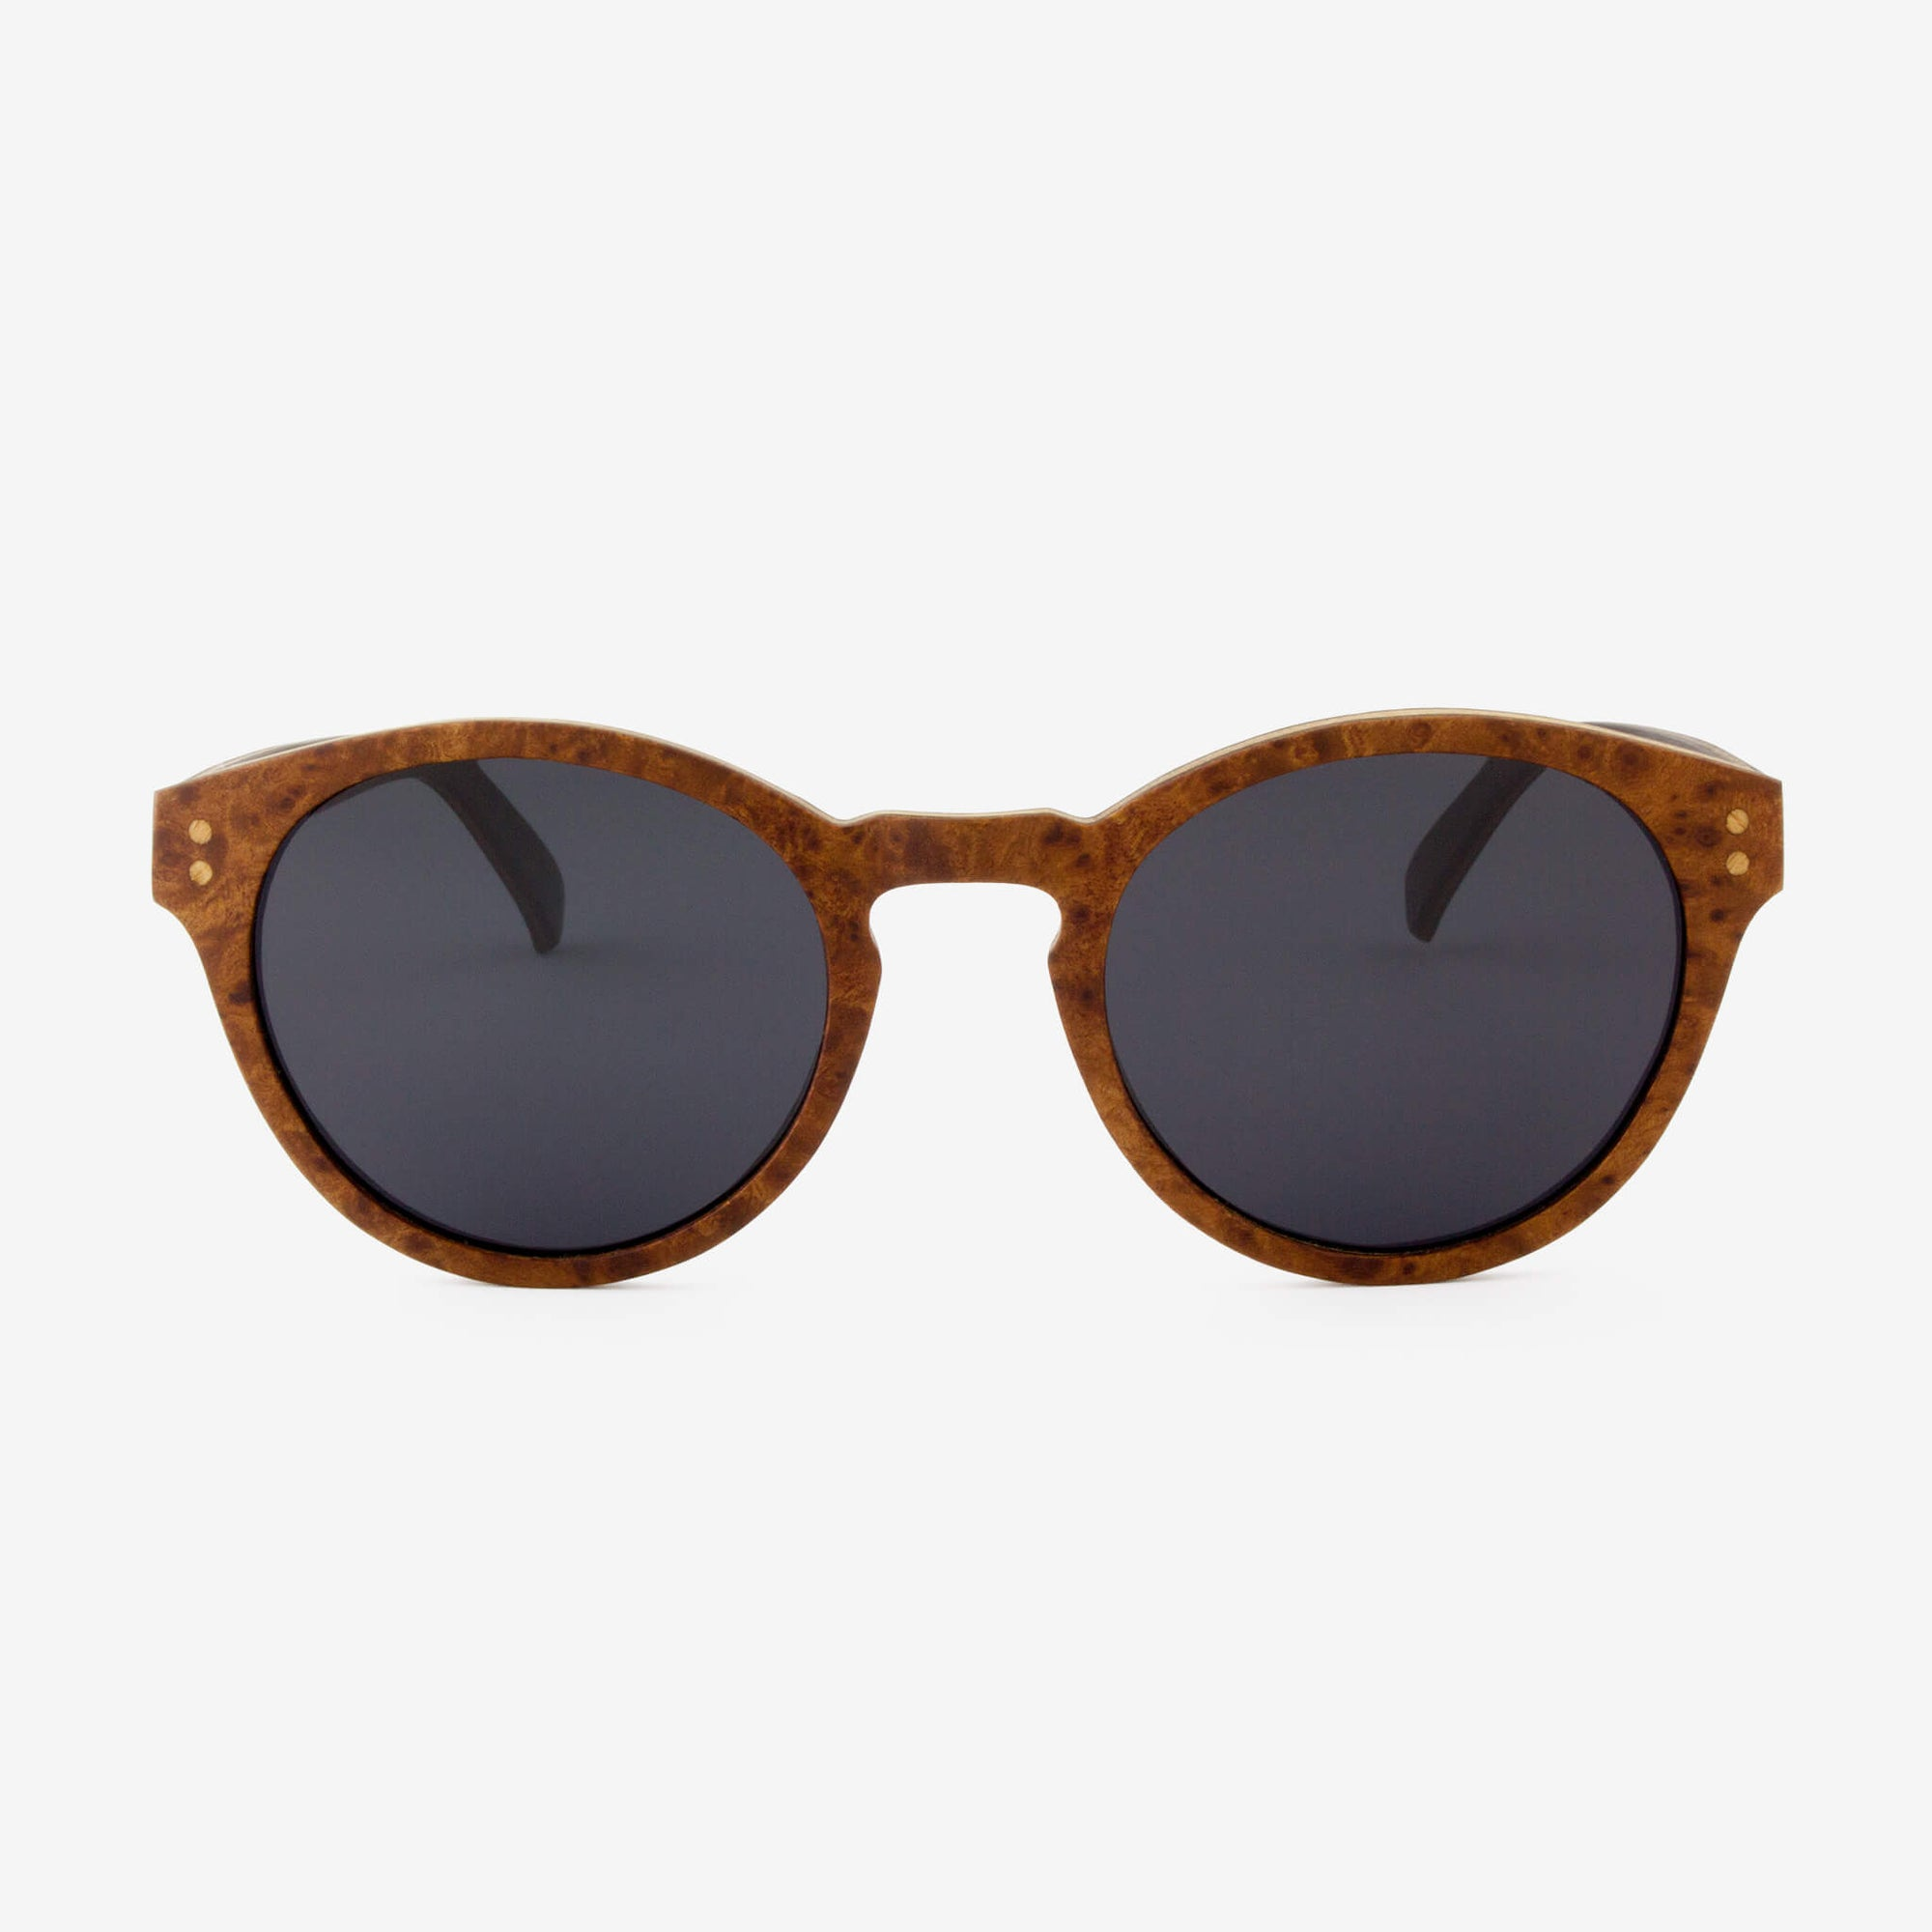 Nassau burl adjustable wood sunglasses